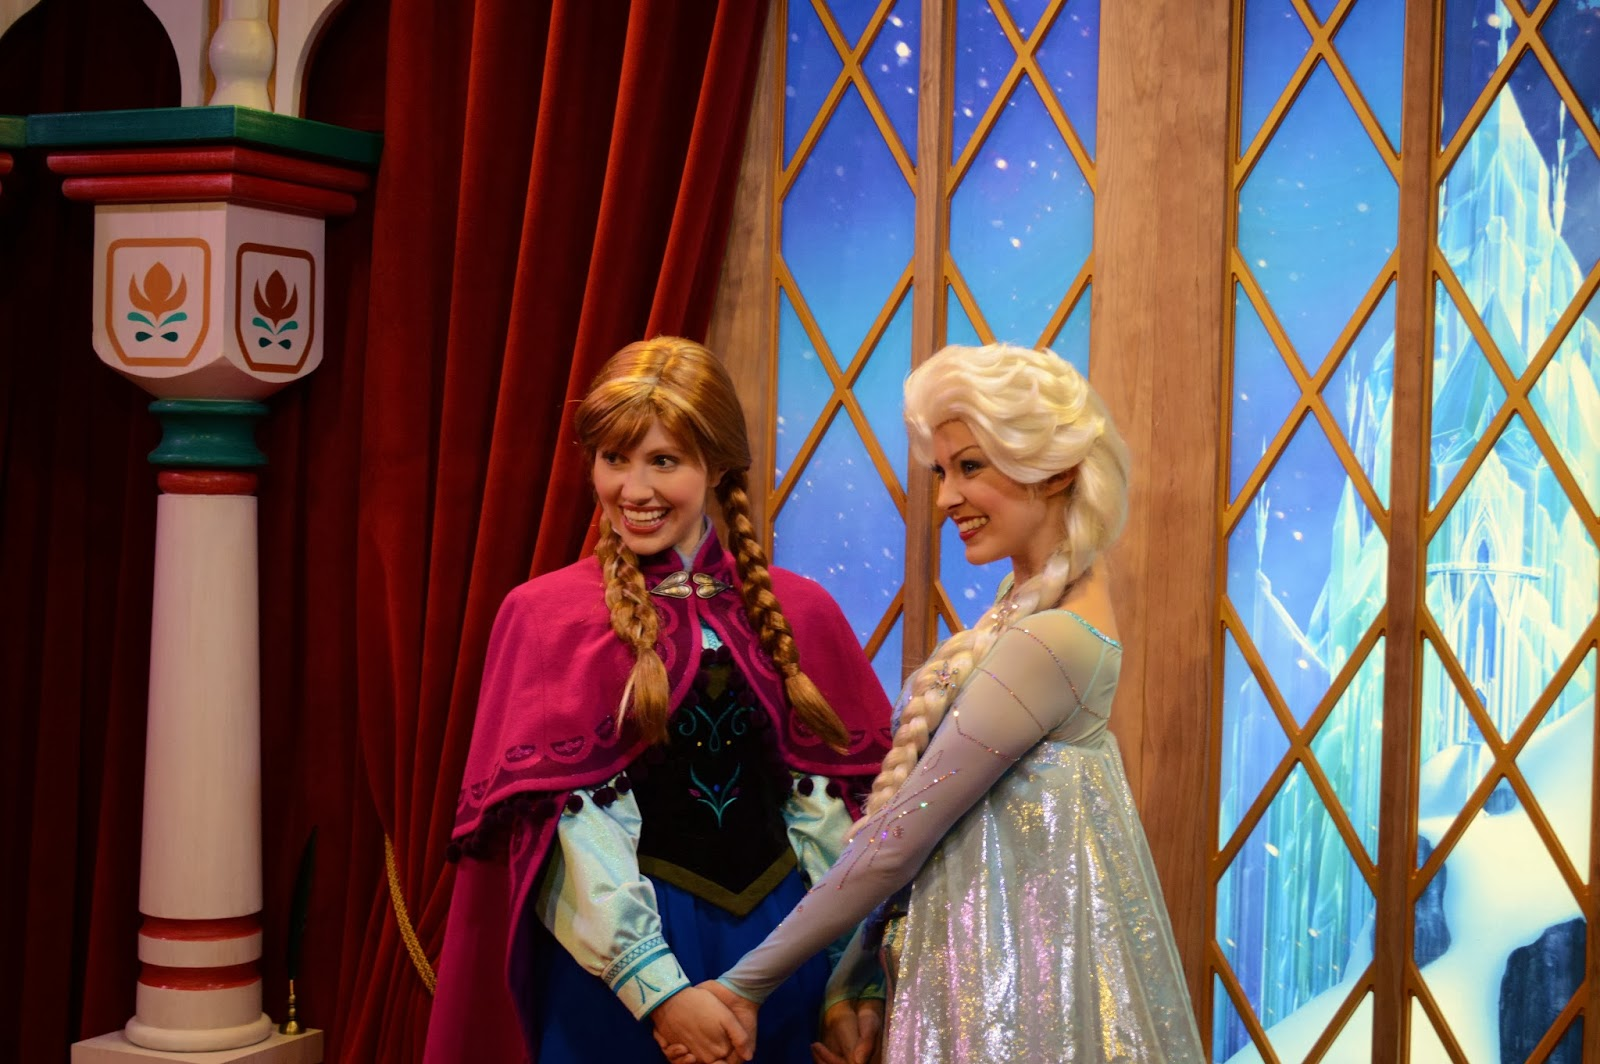 All Around Orlando Anna Elsa From Frozen Start Meet Greet At